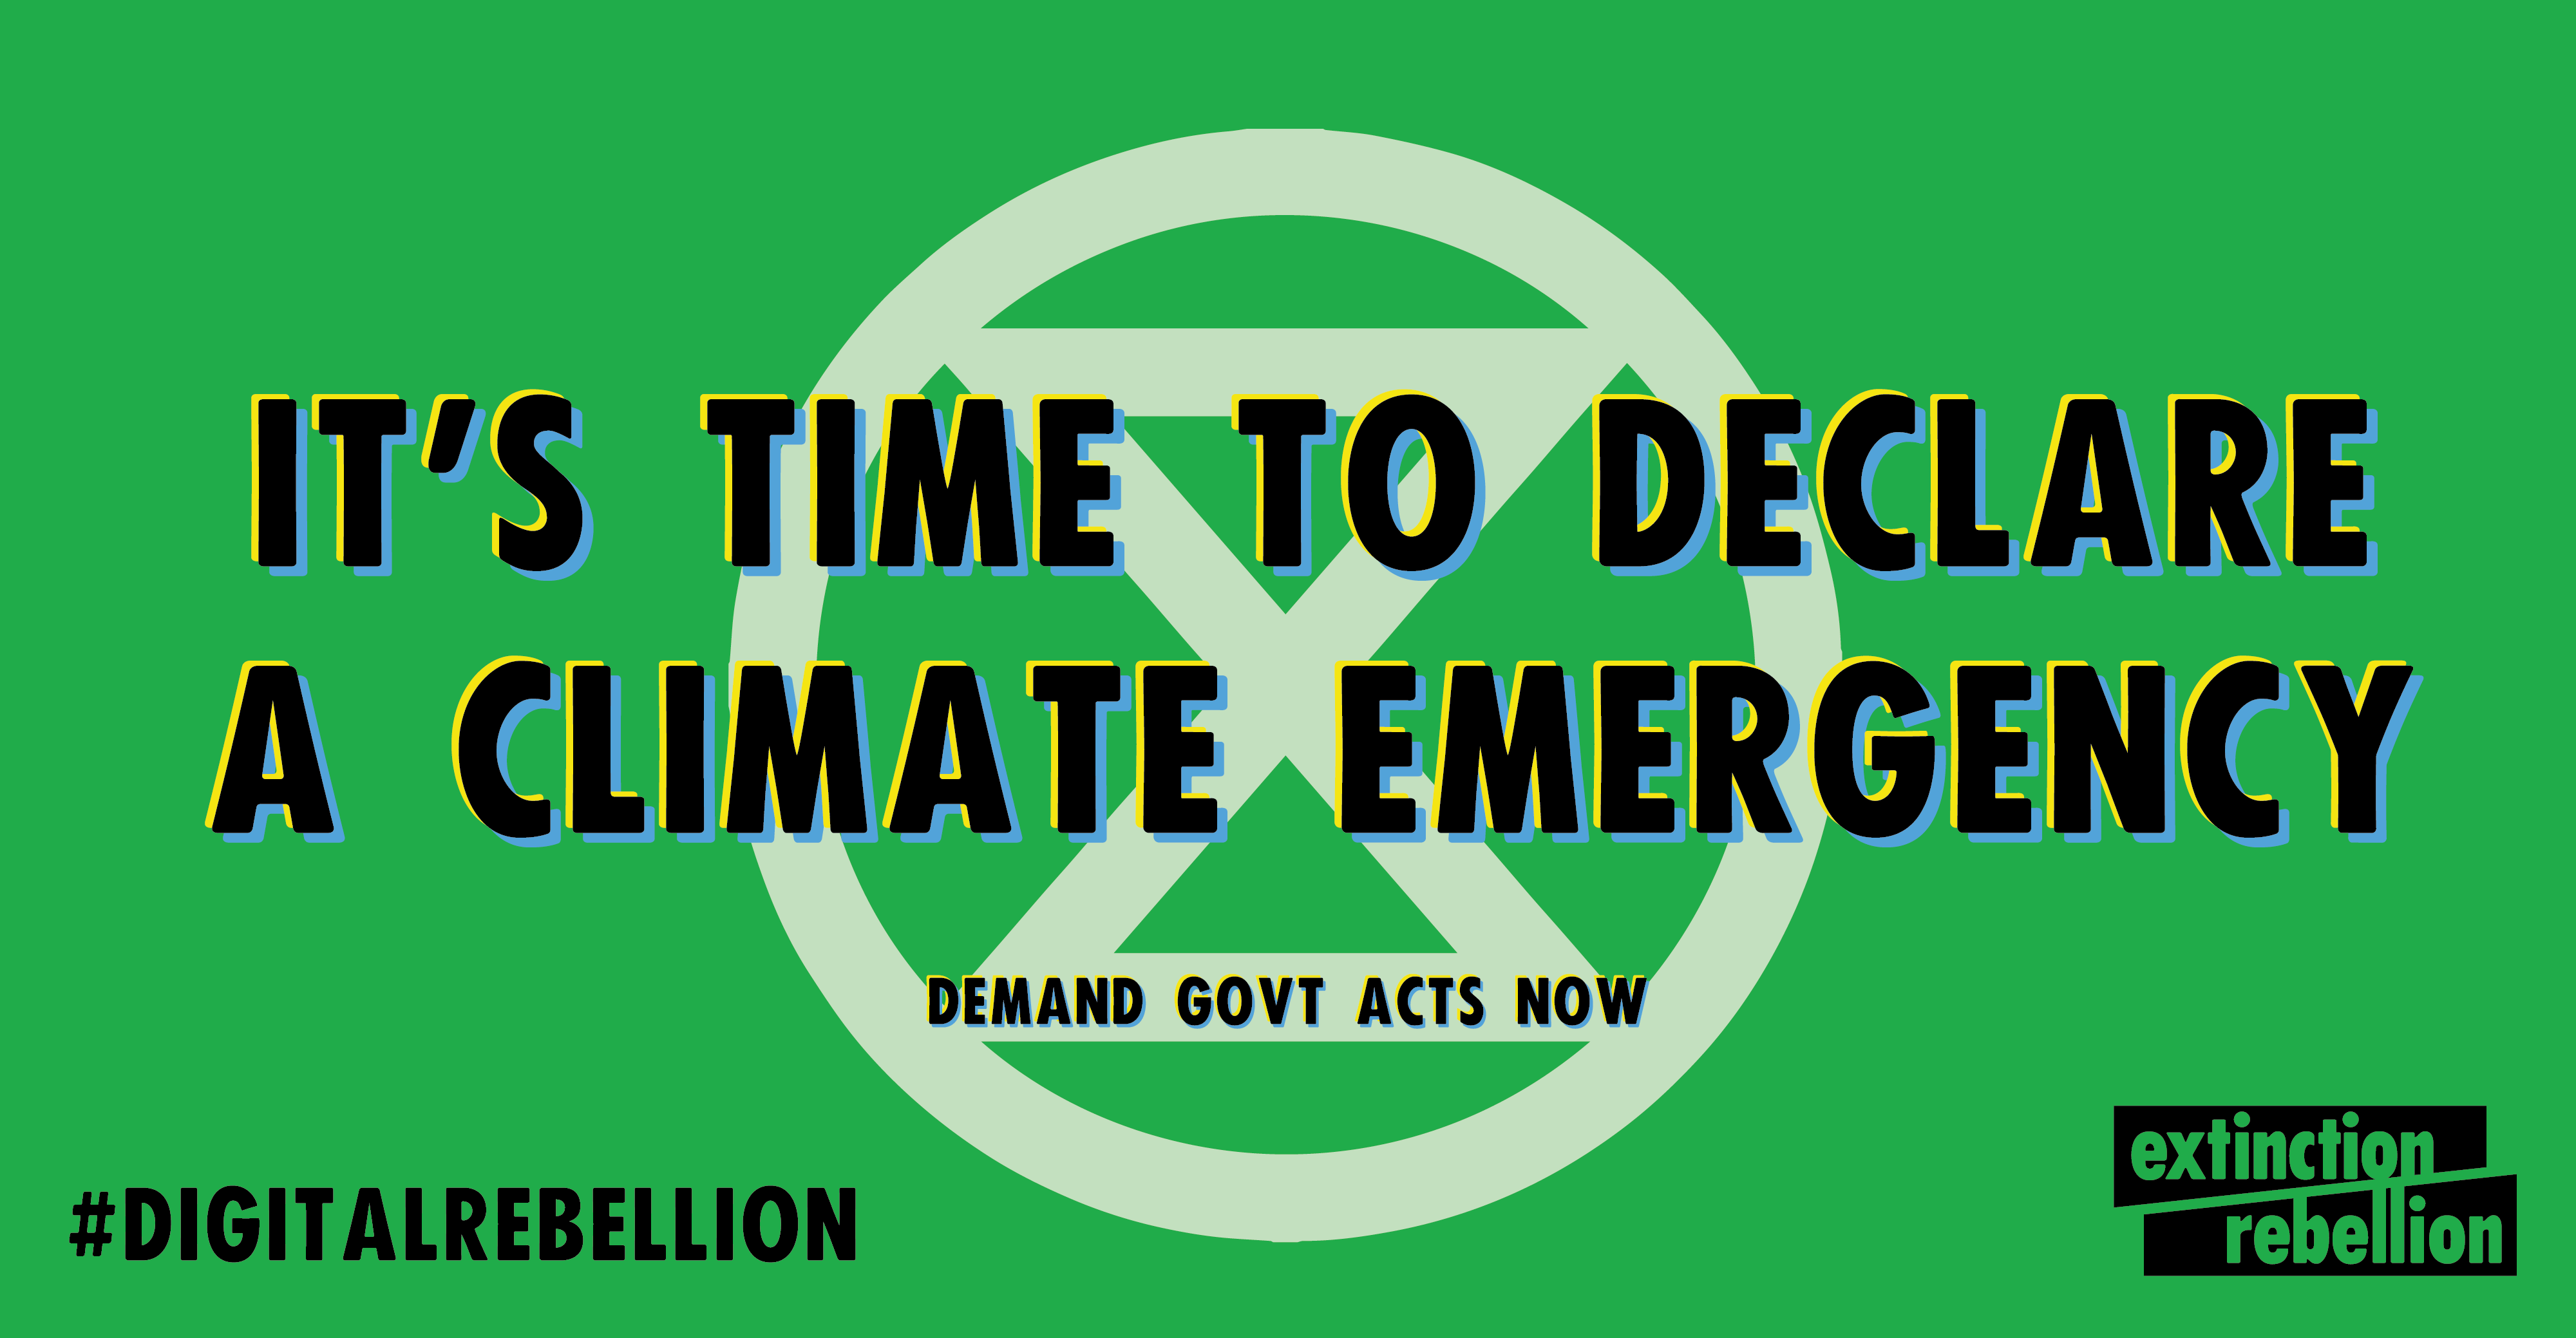 Climate_emergency_facebook2